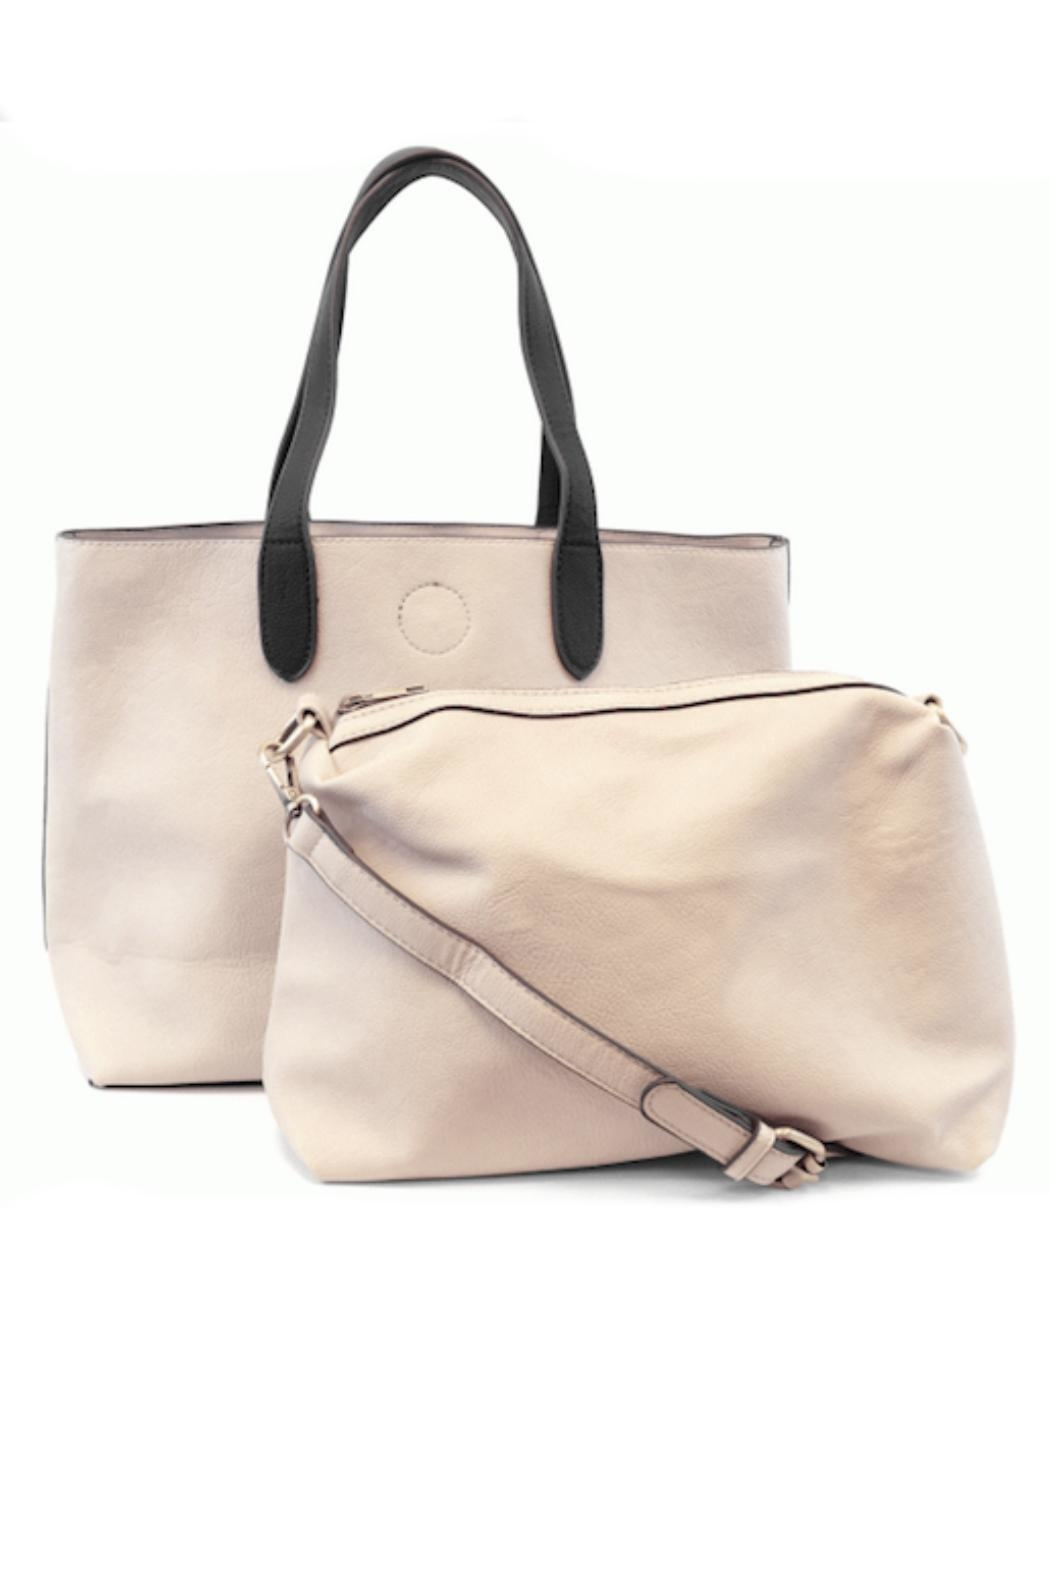 Joy Susan Accessories Two-Toned Tote - Front Full Image